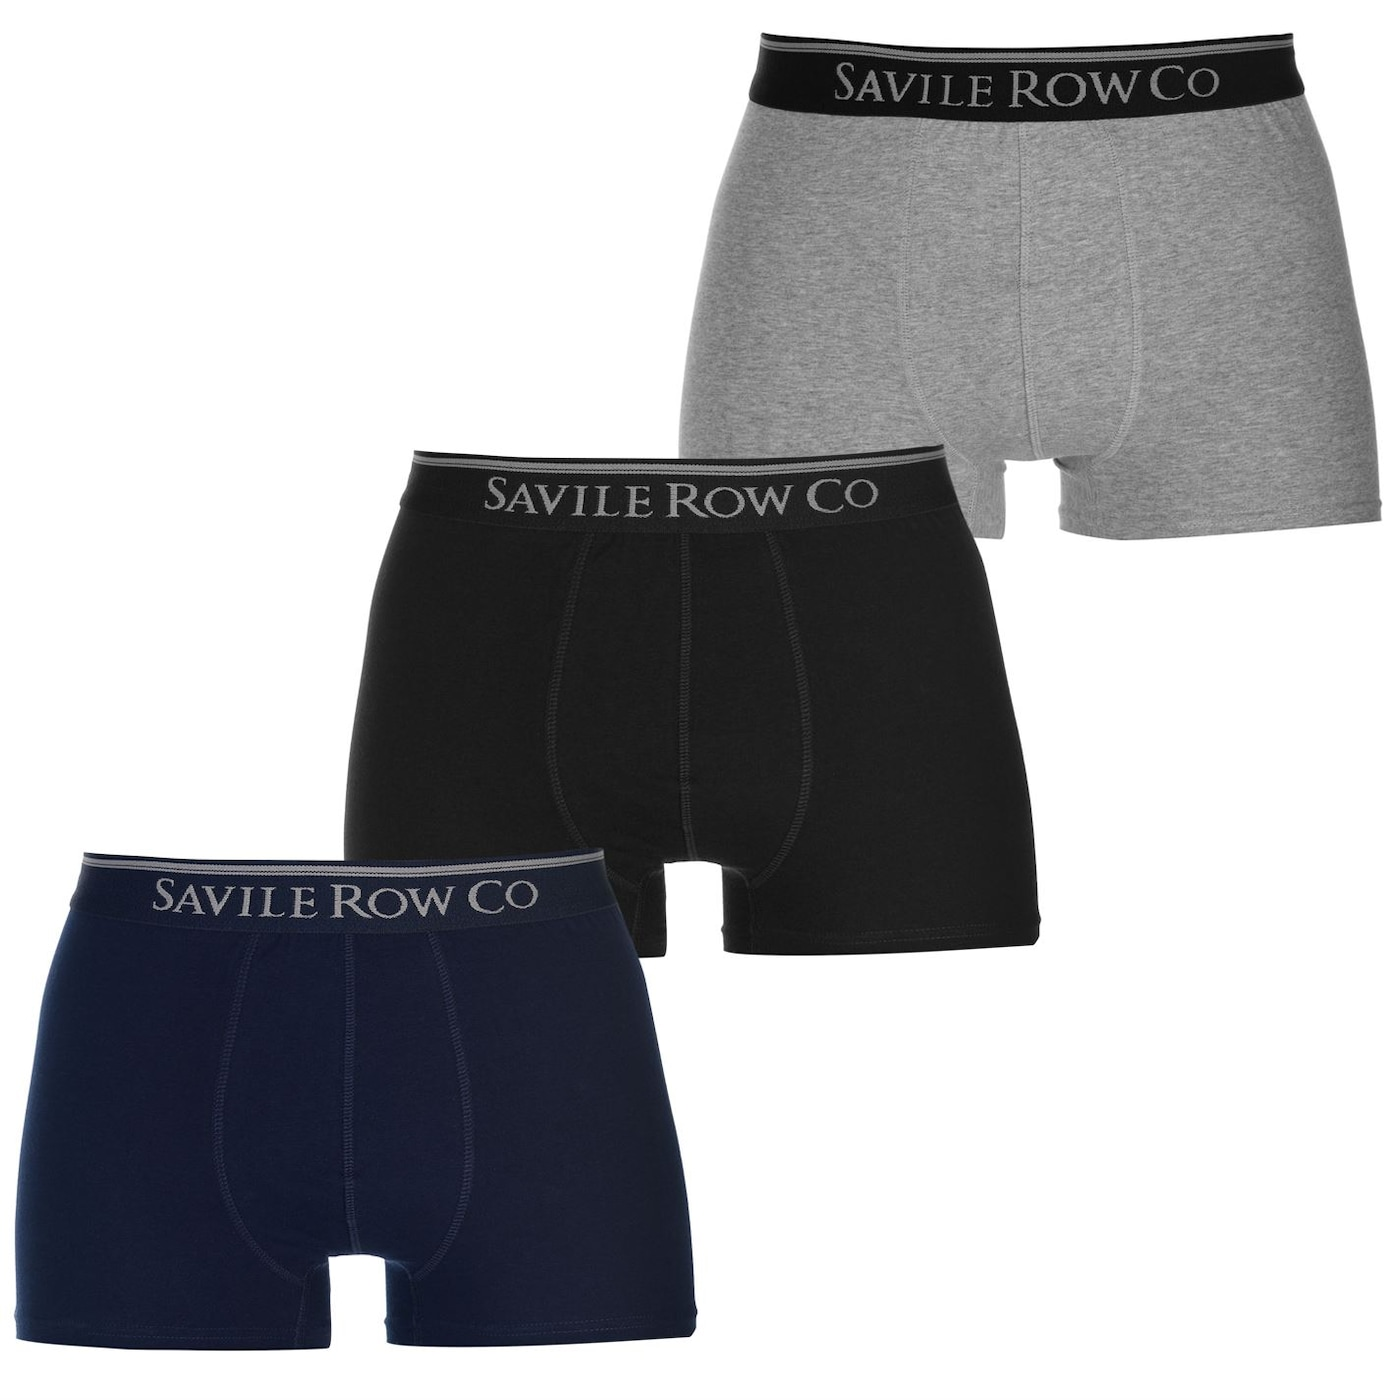 Saville Row 3 Pack Trunks Mens